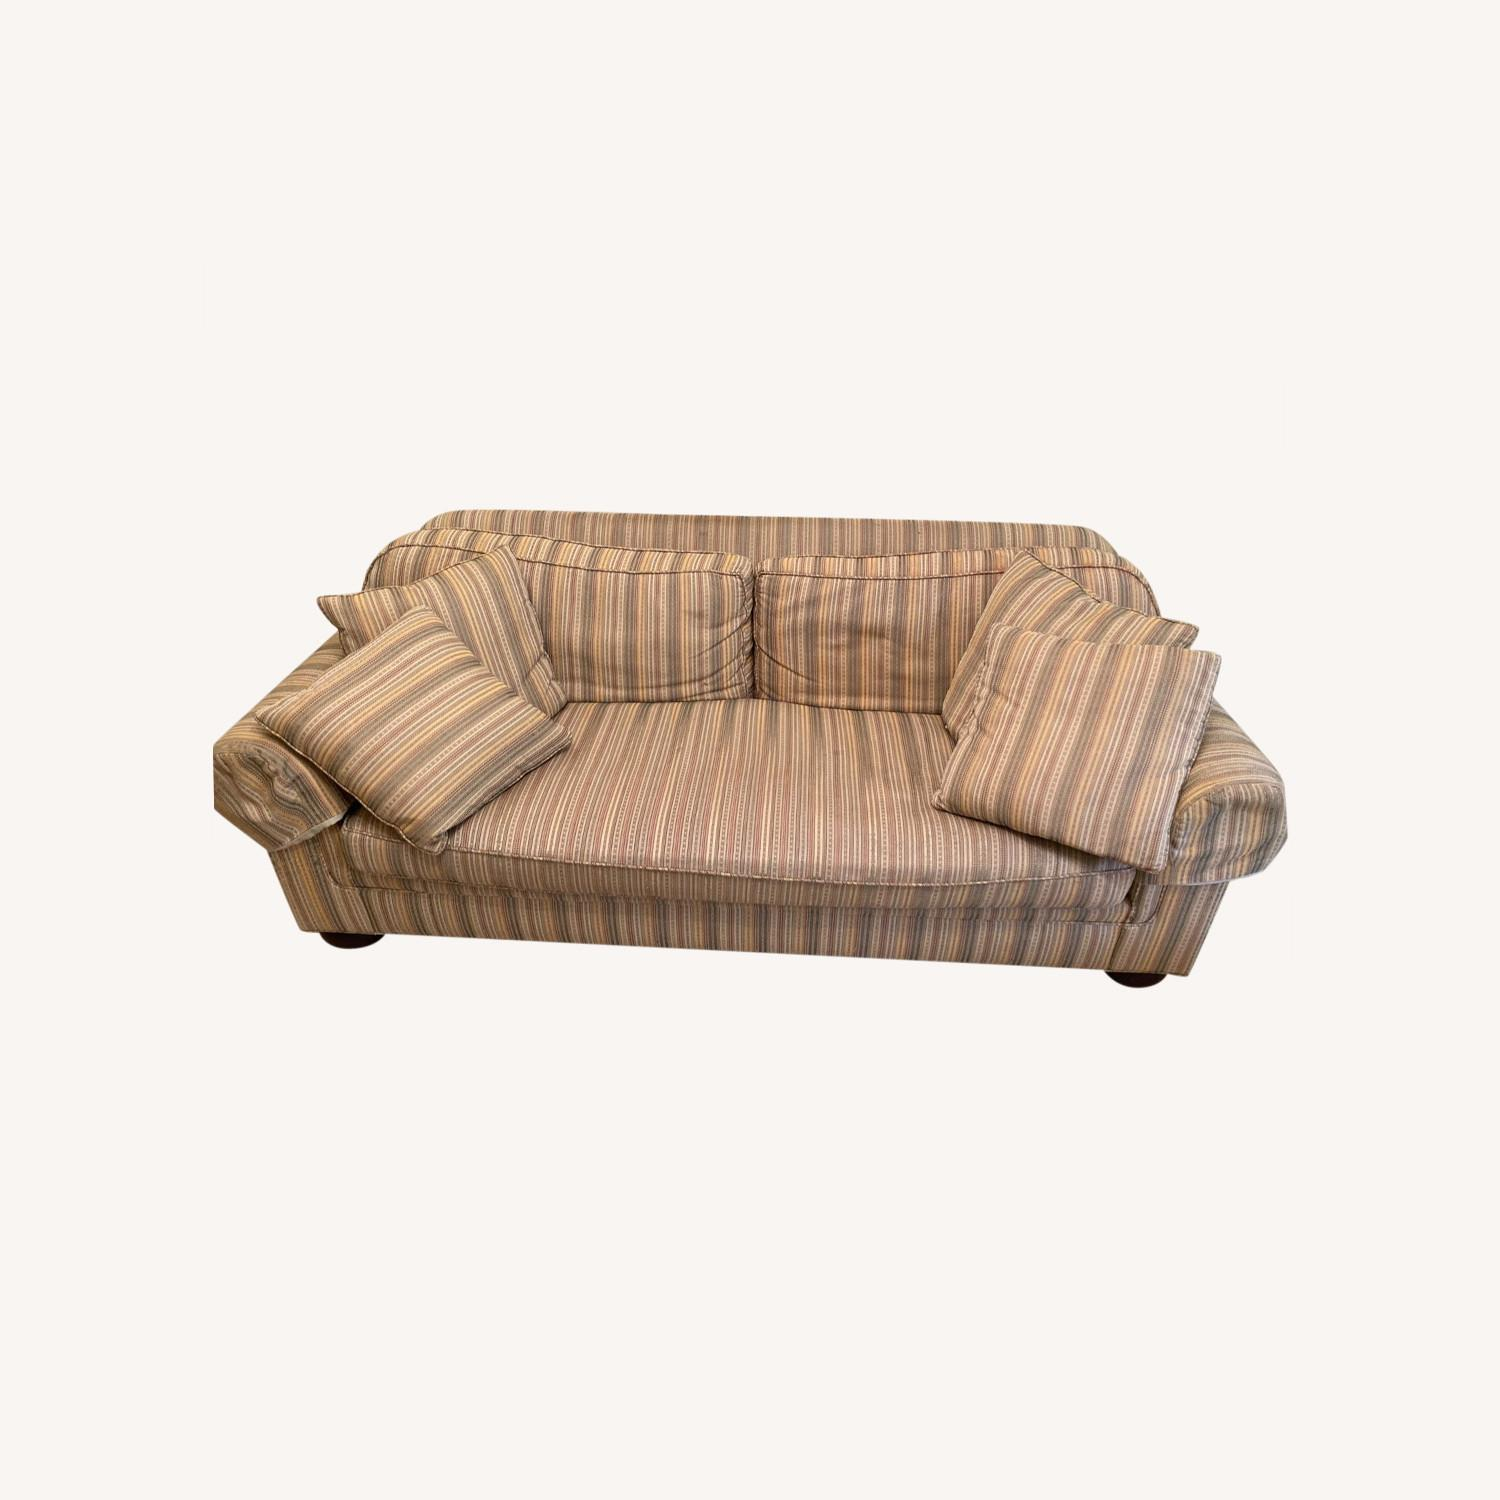 Stickley Brothers Furniture Well Made Designer Couch - image-0